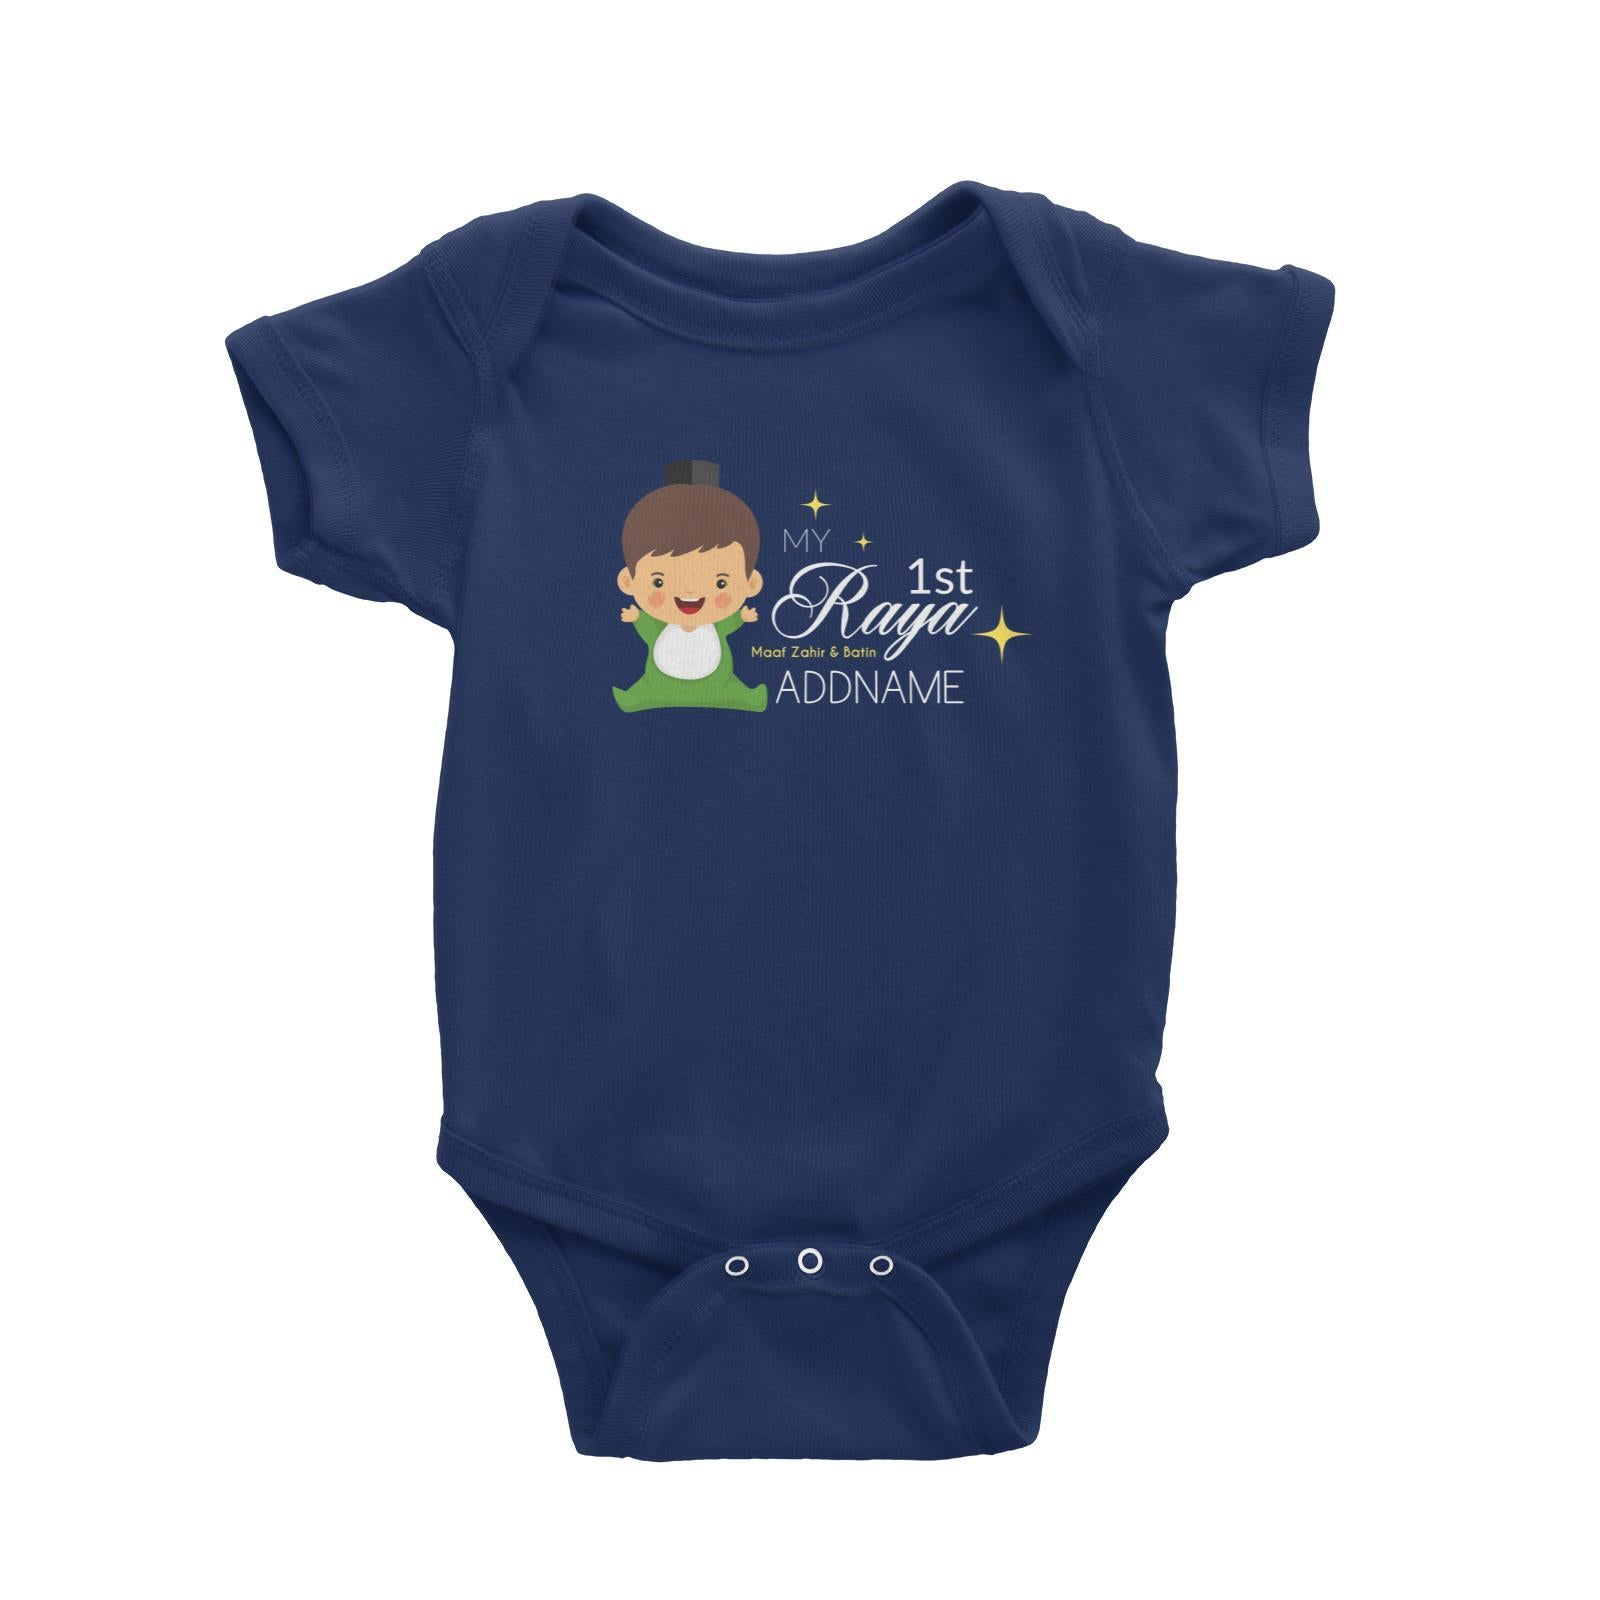 My 1st Raya Baby Boy Baby Romper  Personalizable Designs Sweet Character